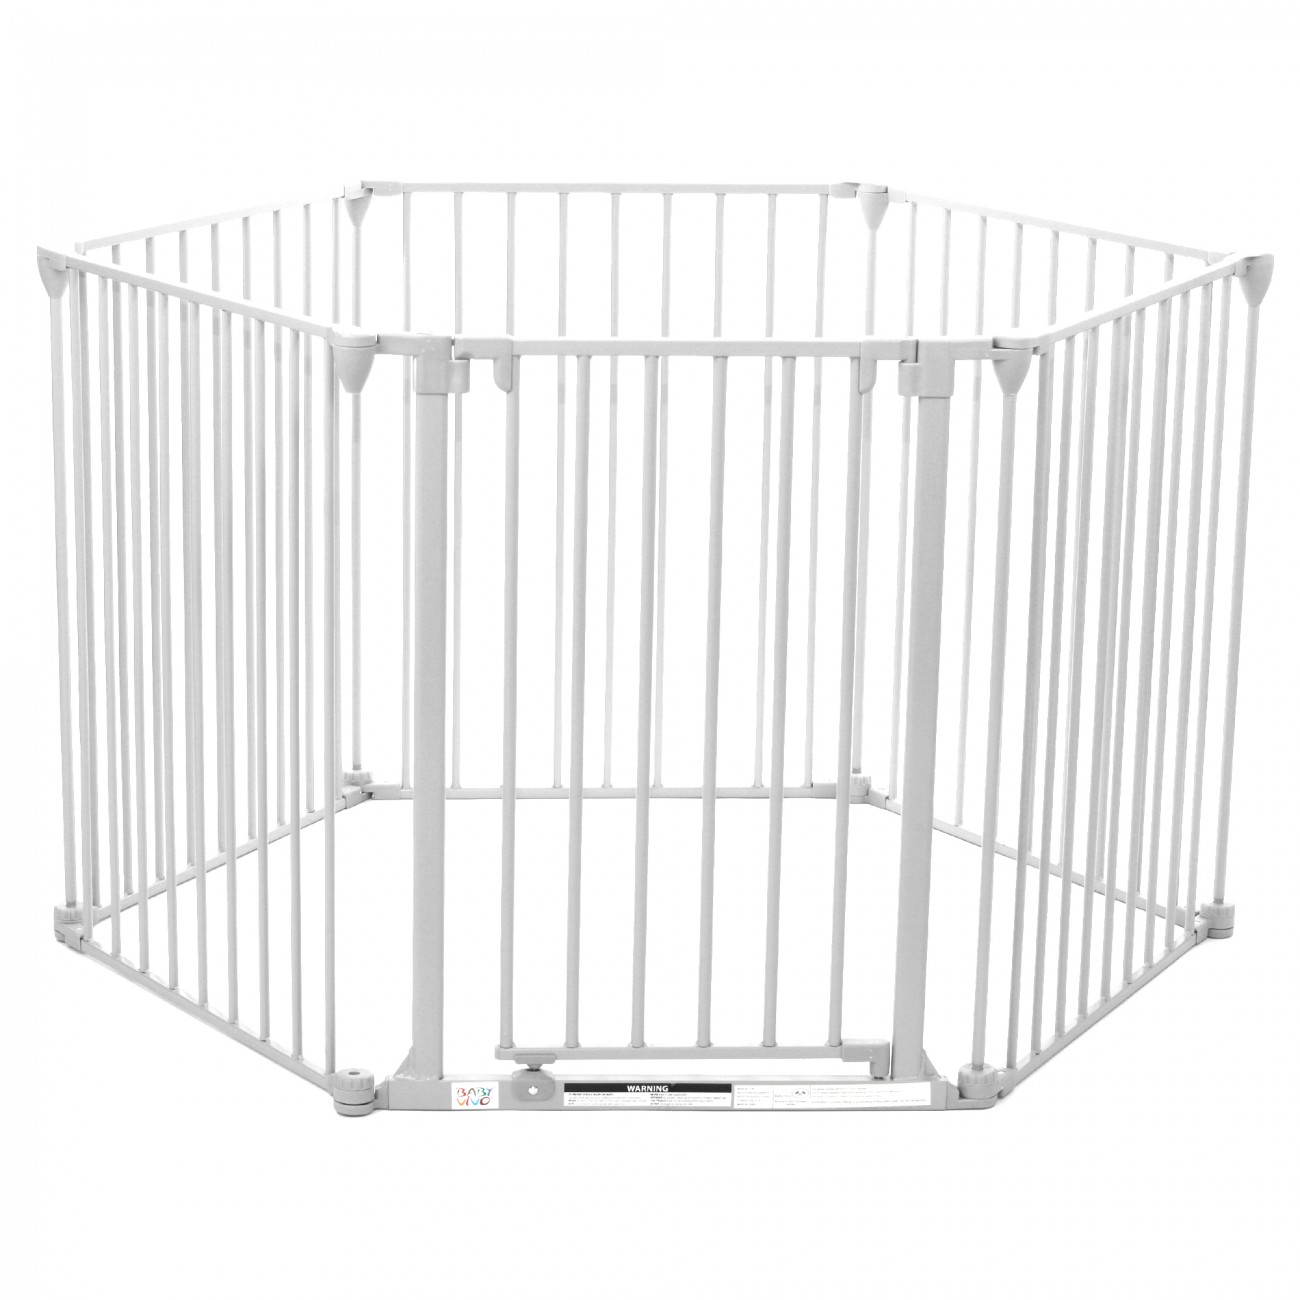 Barri re pare feu grille de chemin e parc en m tal securit enfant escaliers ebay - Barriere de securite cheminee ...